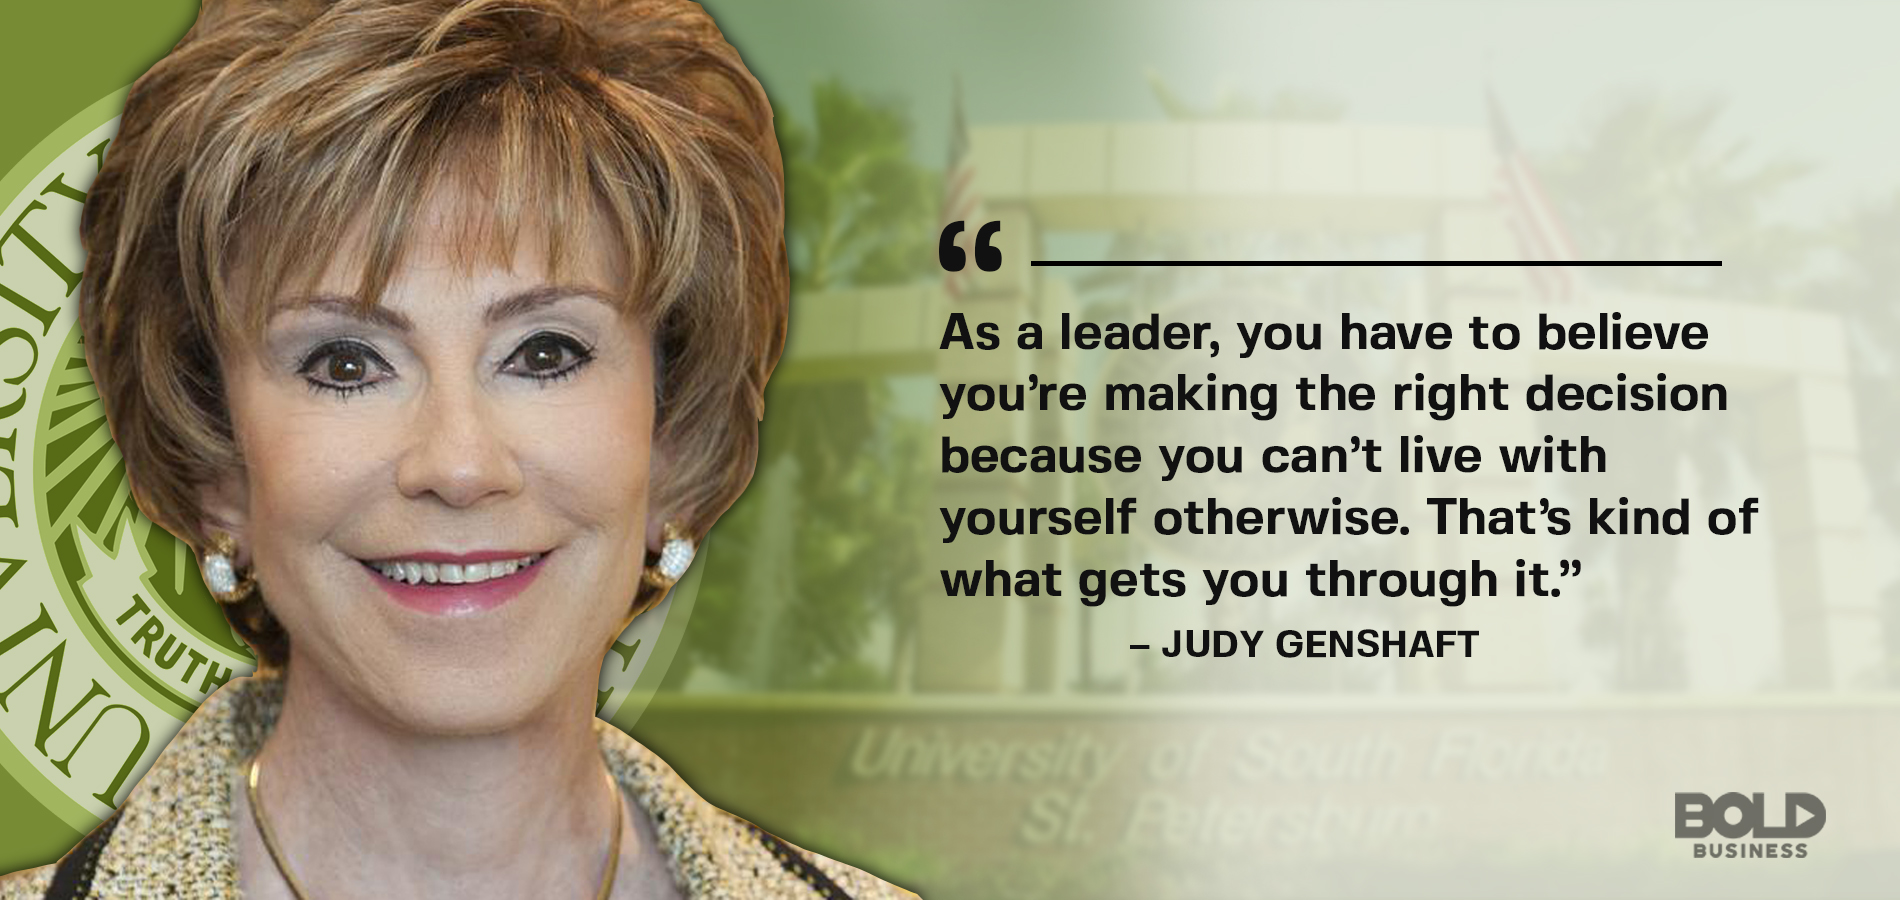 Bold Leader Judy Genshaft has used bold leadership to make USF a pillar of the Tampa Bay community.